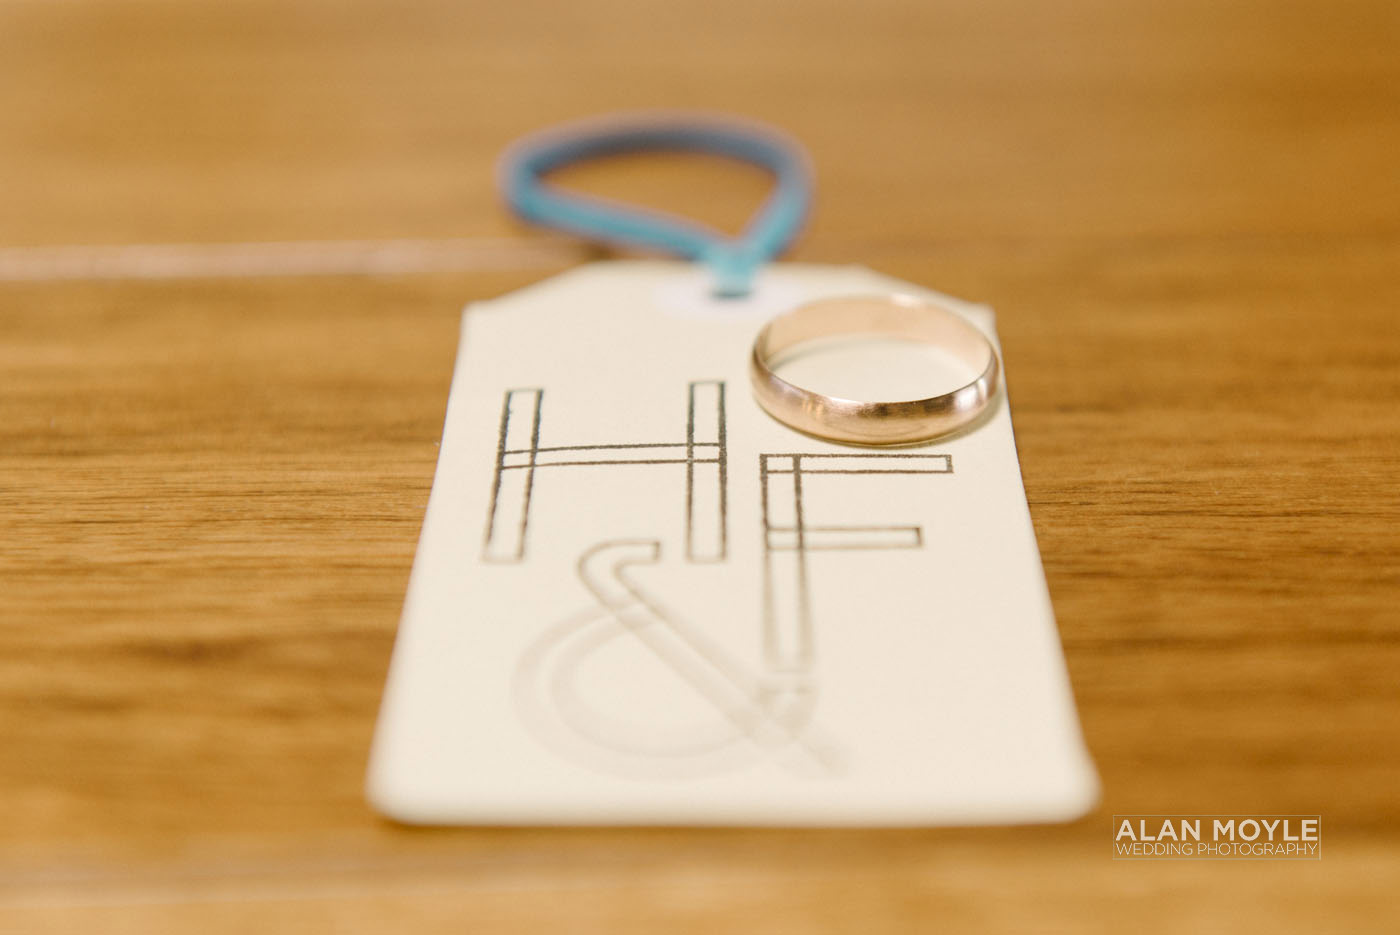 1410kershaw-014-melbourne_wedding_photographer_photography_larwill_studio_orange_elope_bride_blue_bayside_photobat_alan_moyle_winebar_port_melbourne_rings.jpg